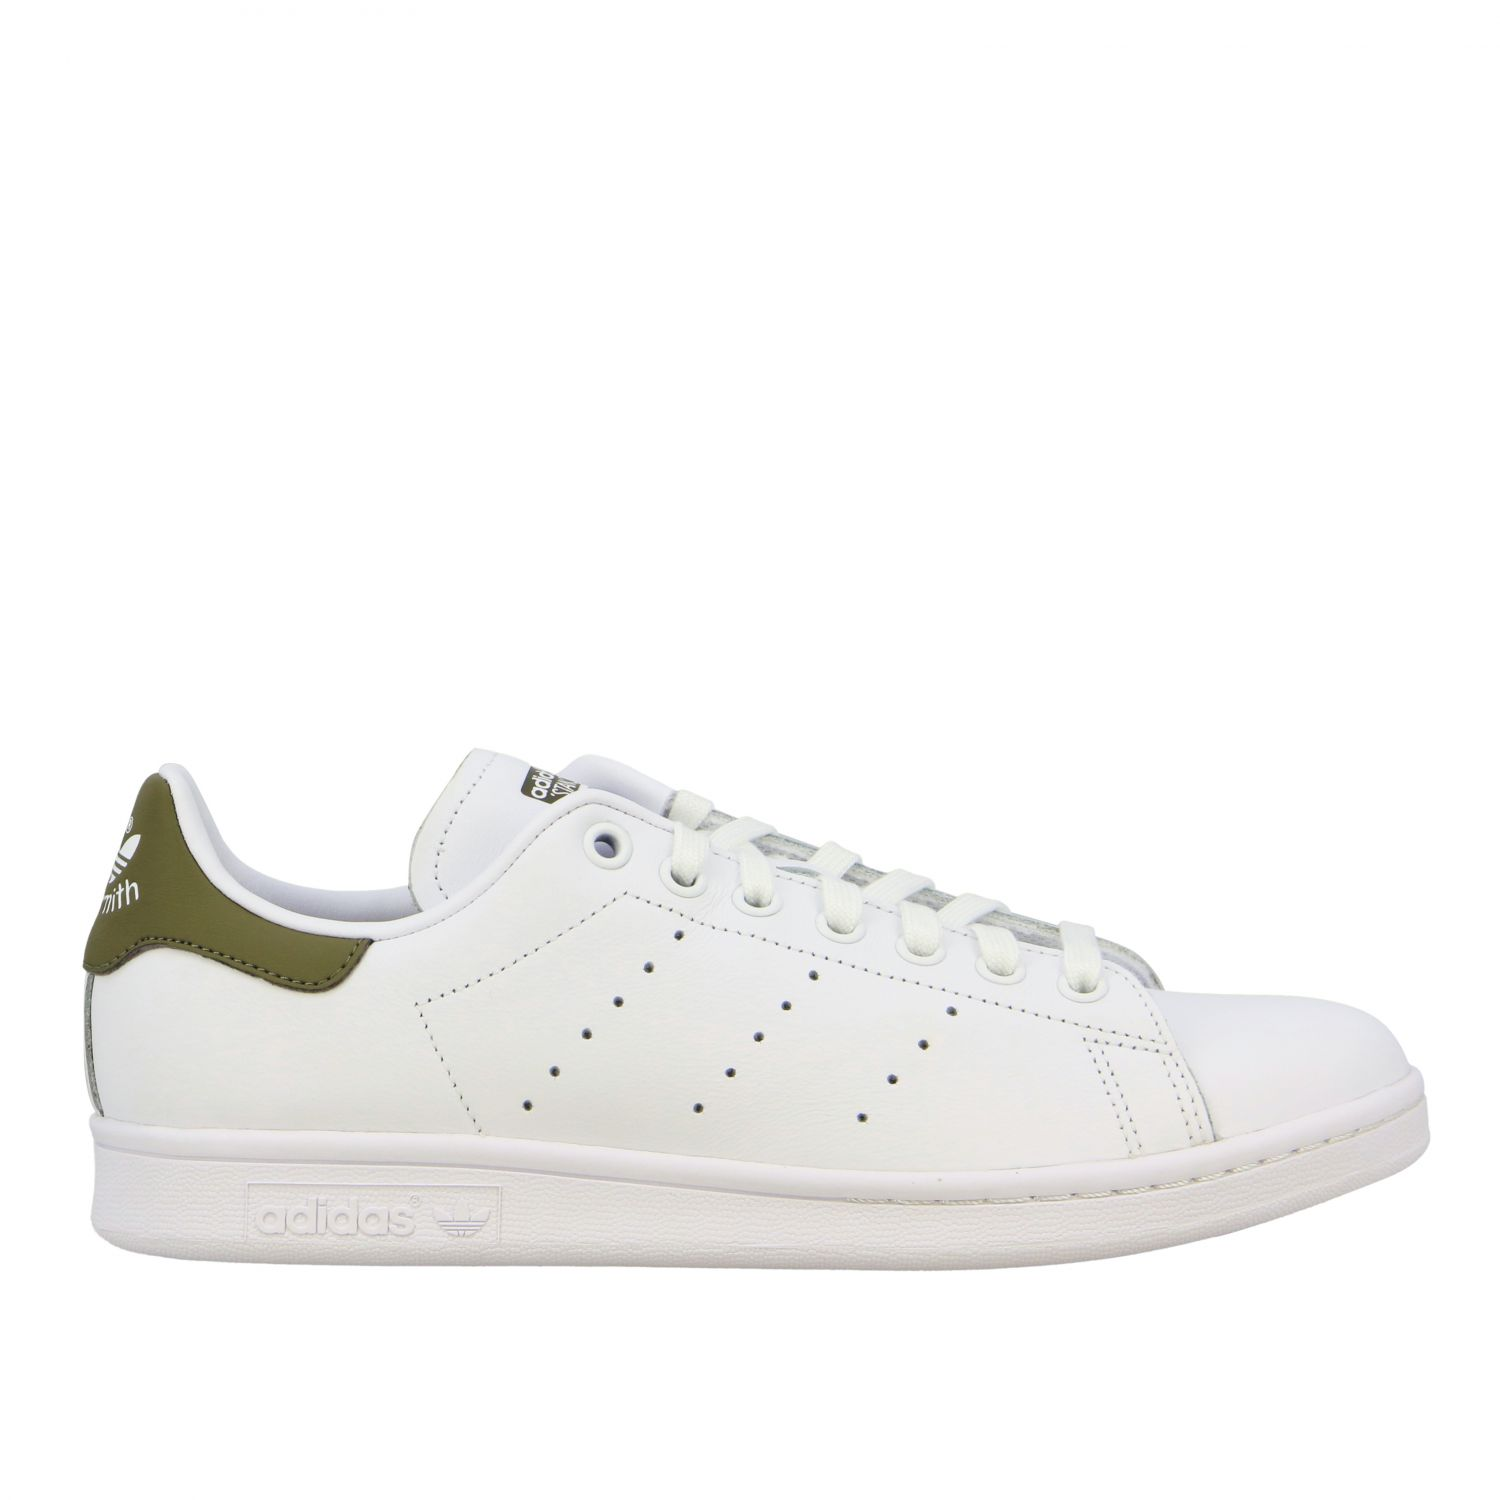 Baskets en cuir Adidas Originals Stan Smith blanc 1